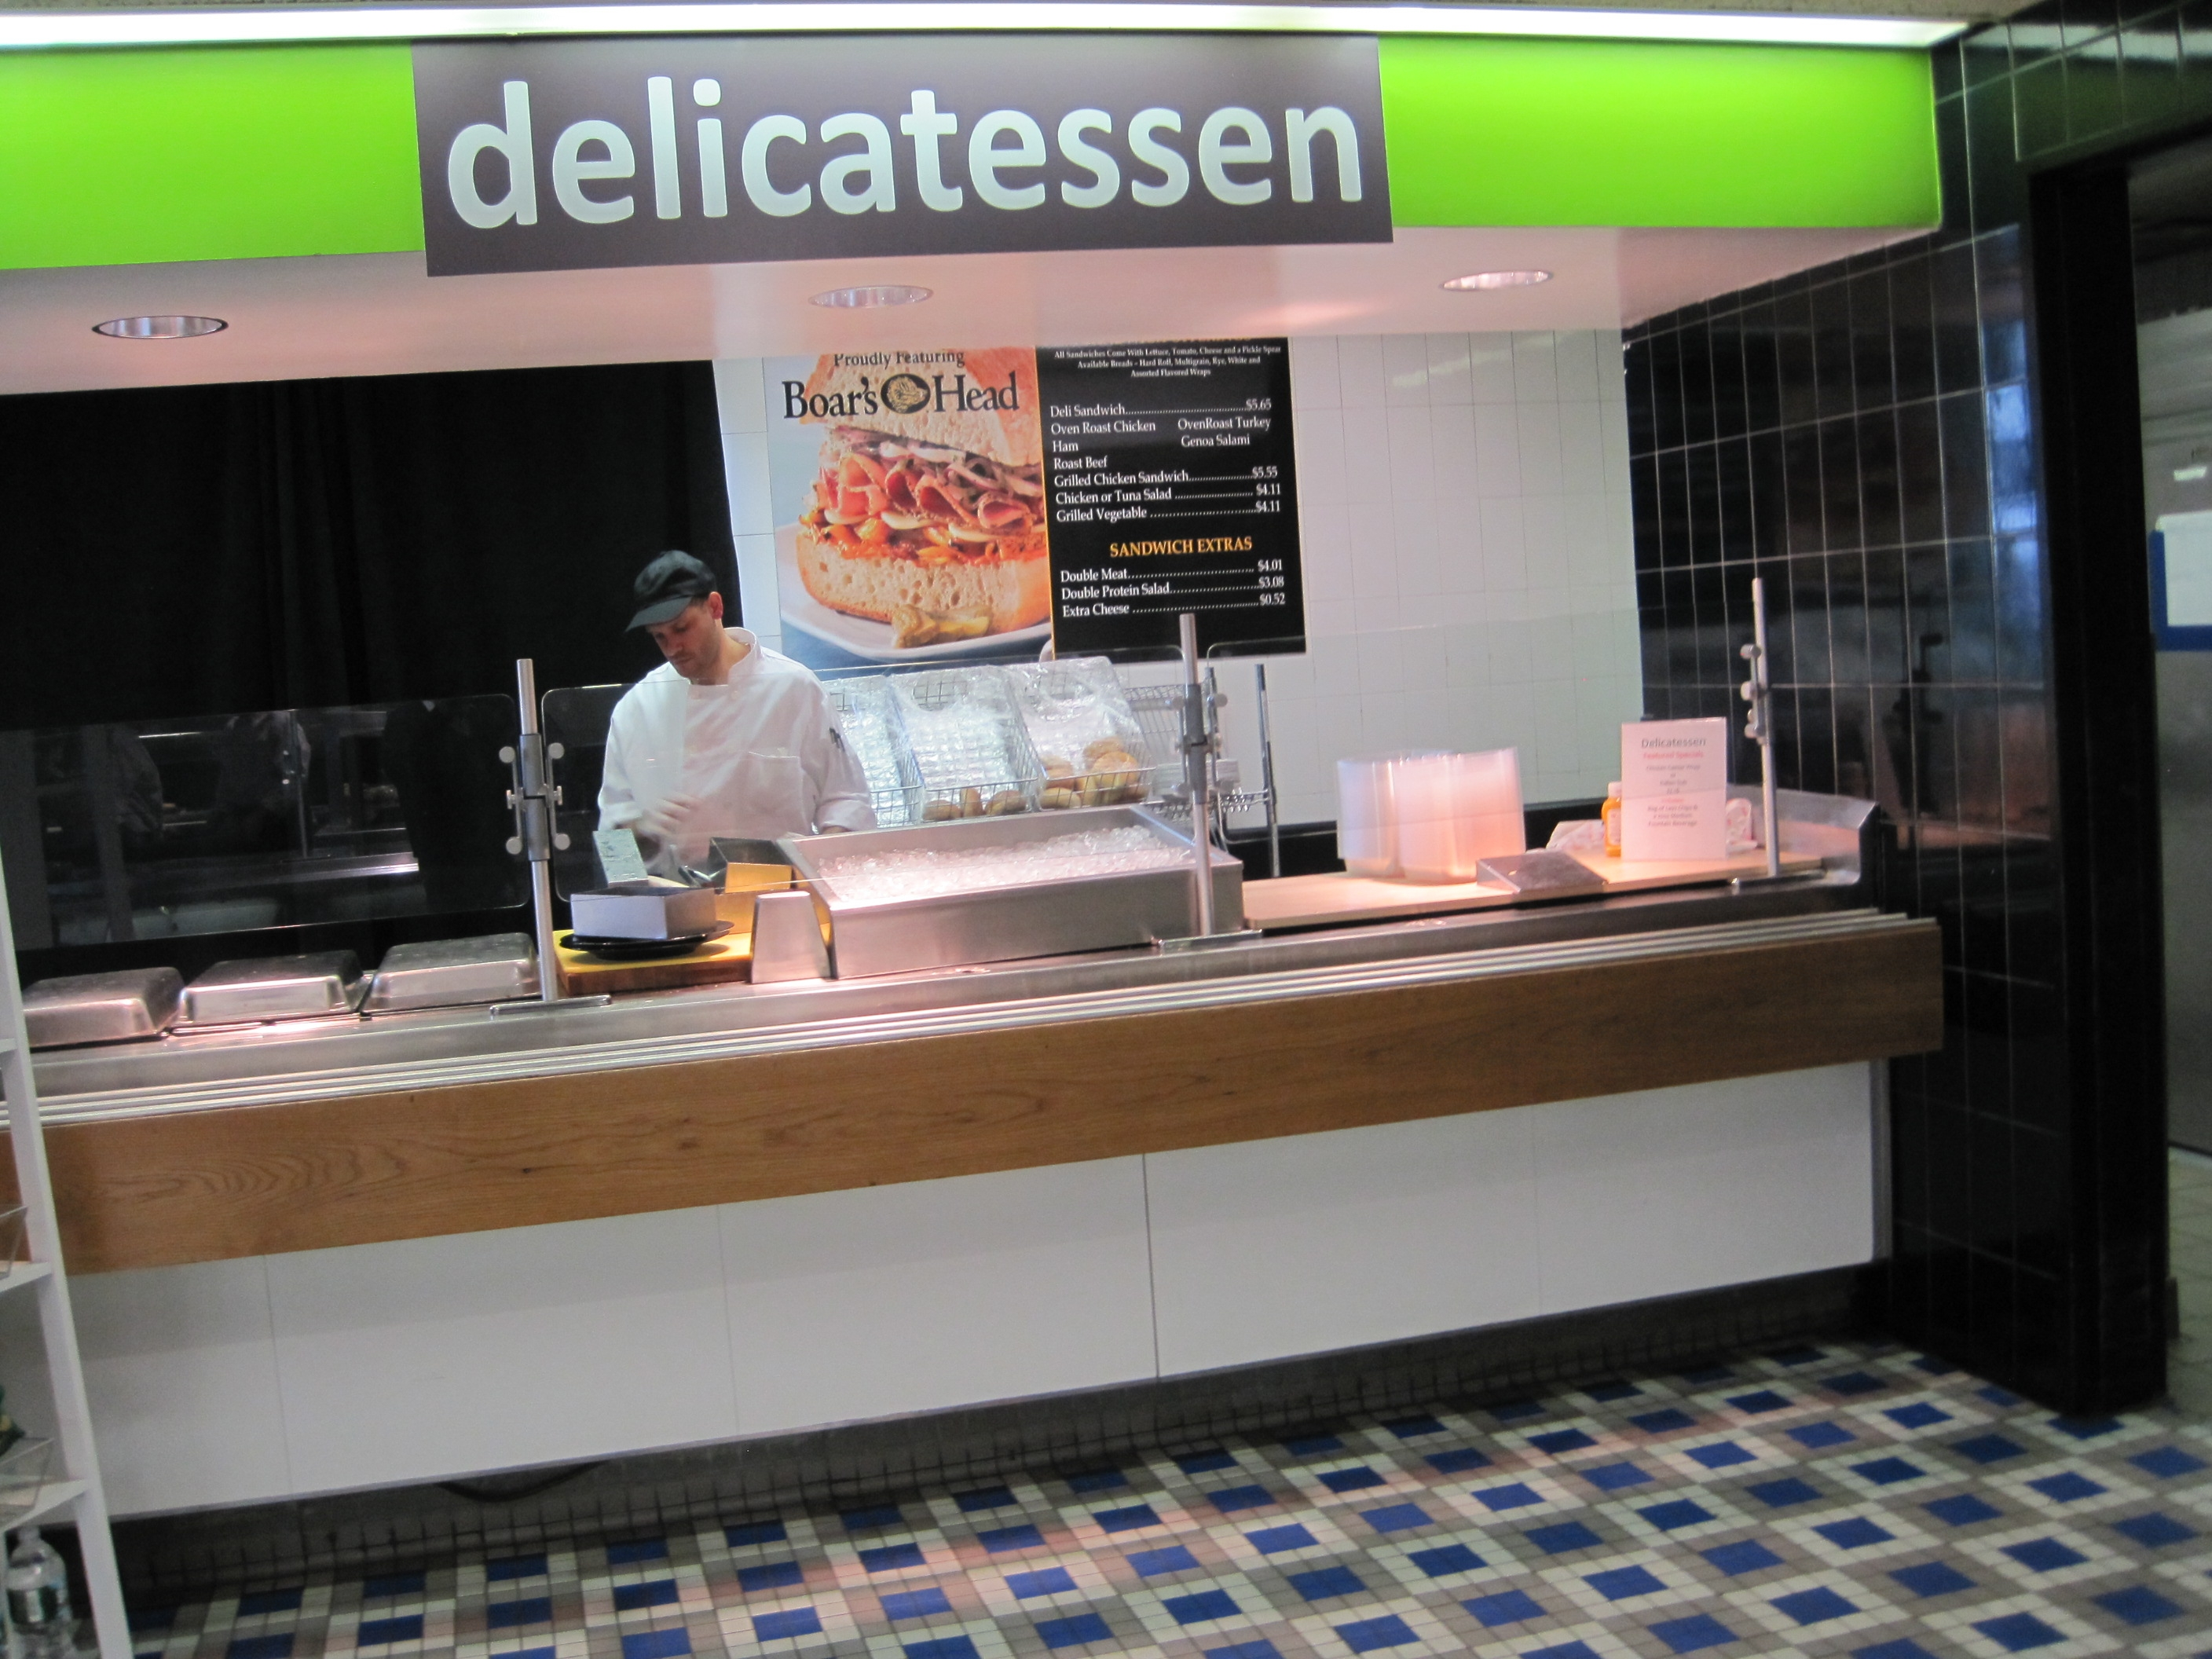 UN cafeteria delicatessen station